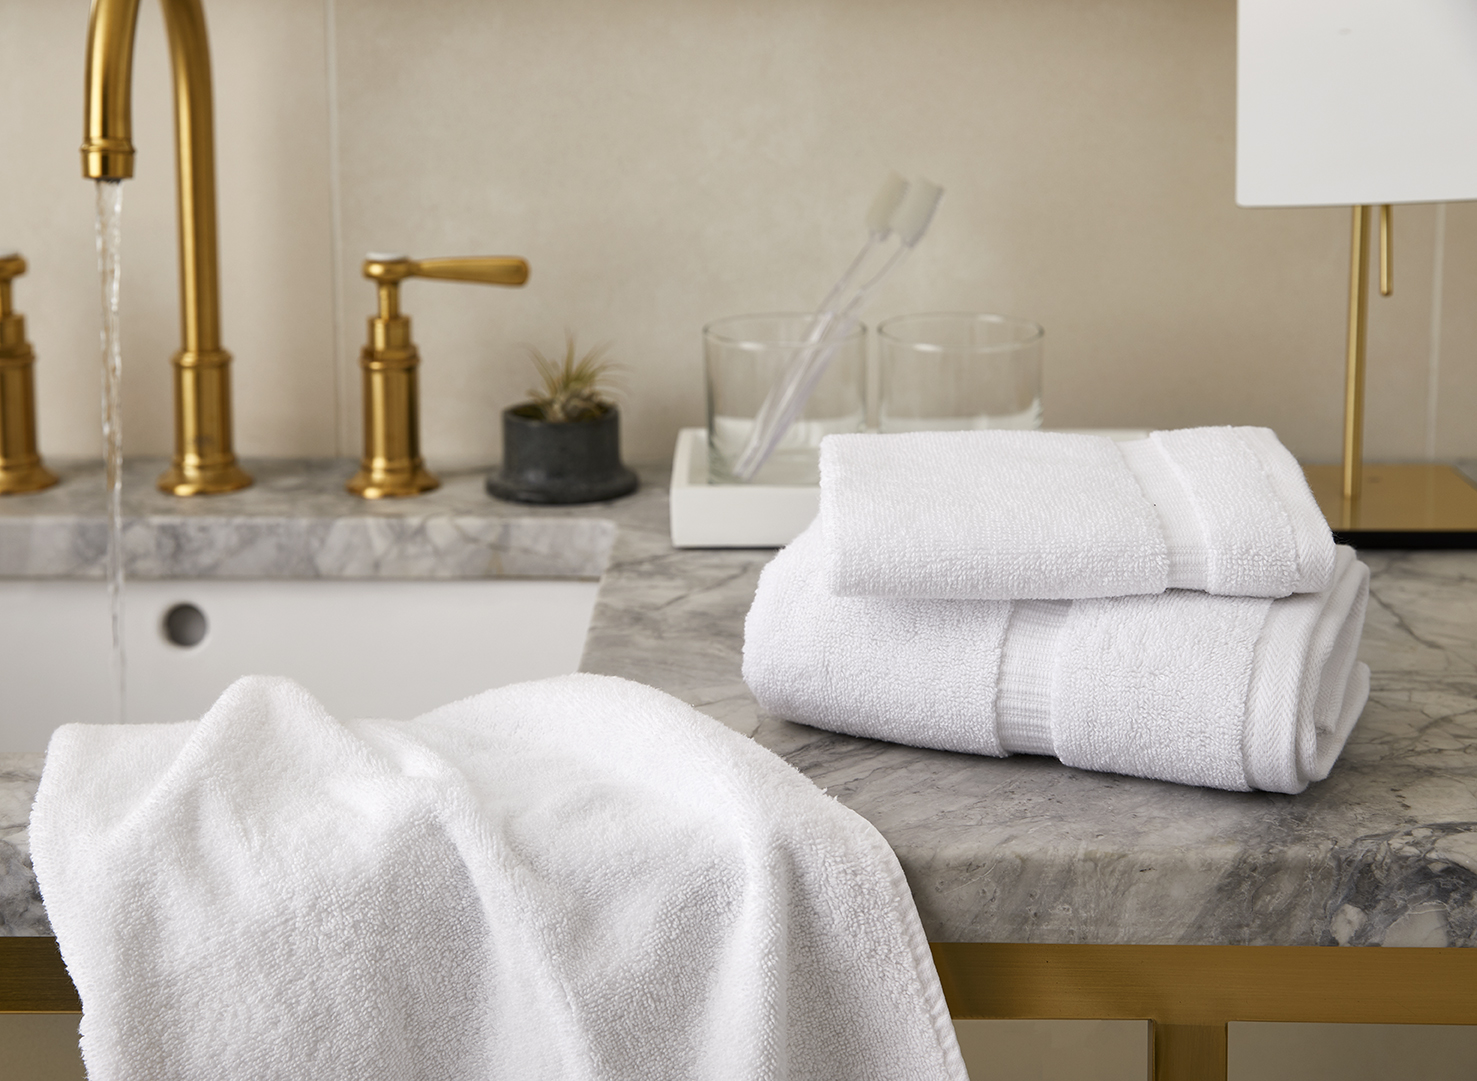 Revival_New_York_Luxury_Bed_Bath_Linens_Custom_Products_Hospitality_Hotels